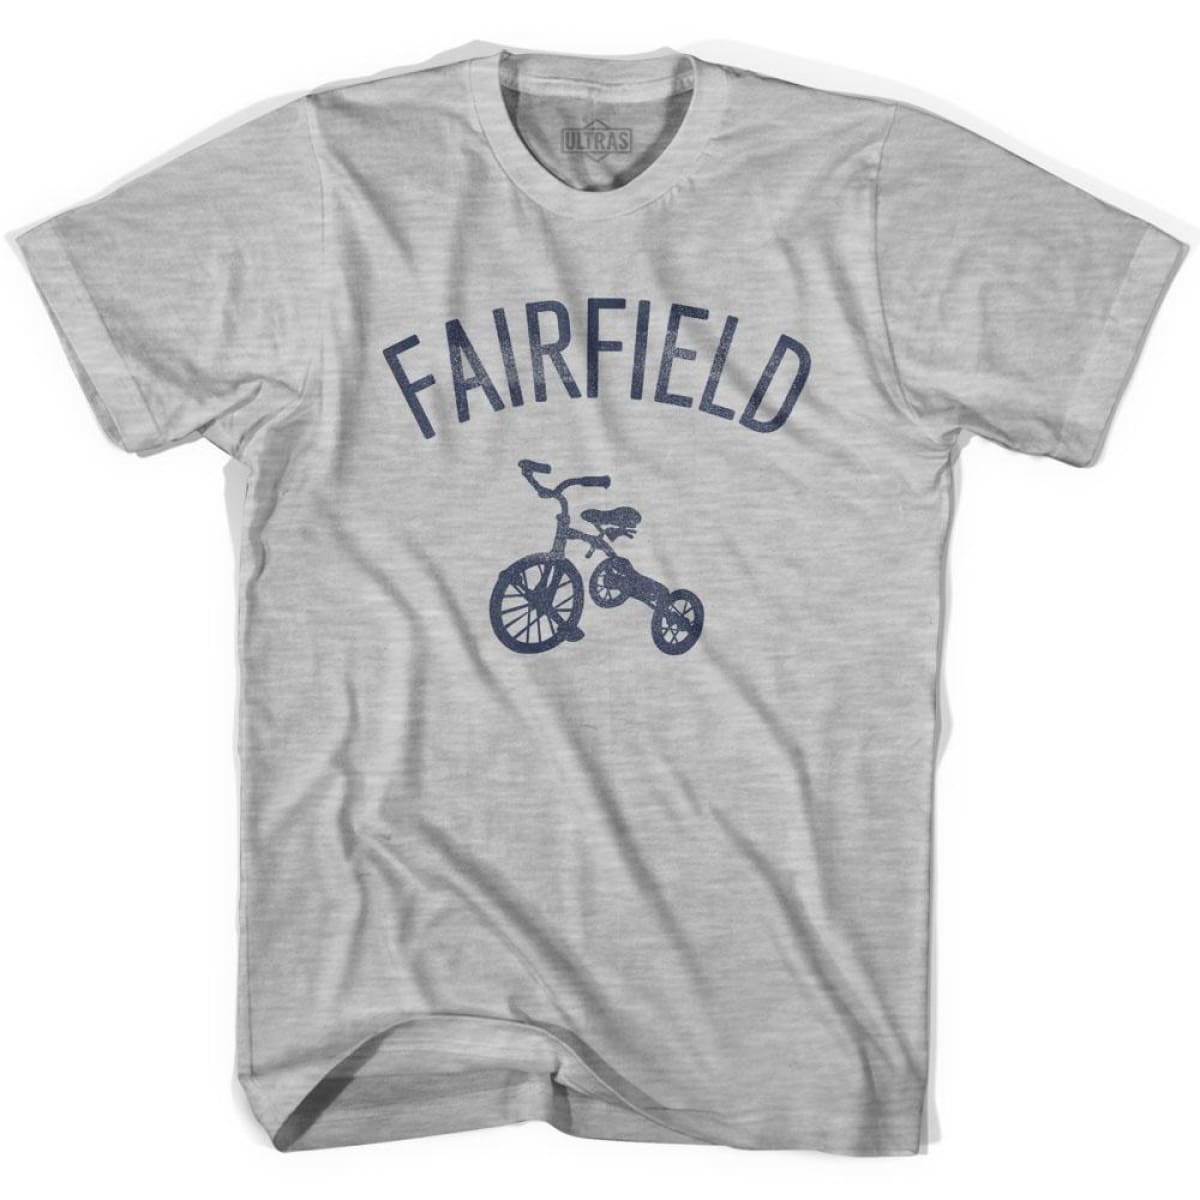 Fairfield City Tricycle Youth Cotton T-shirt - Tricycle City